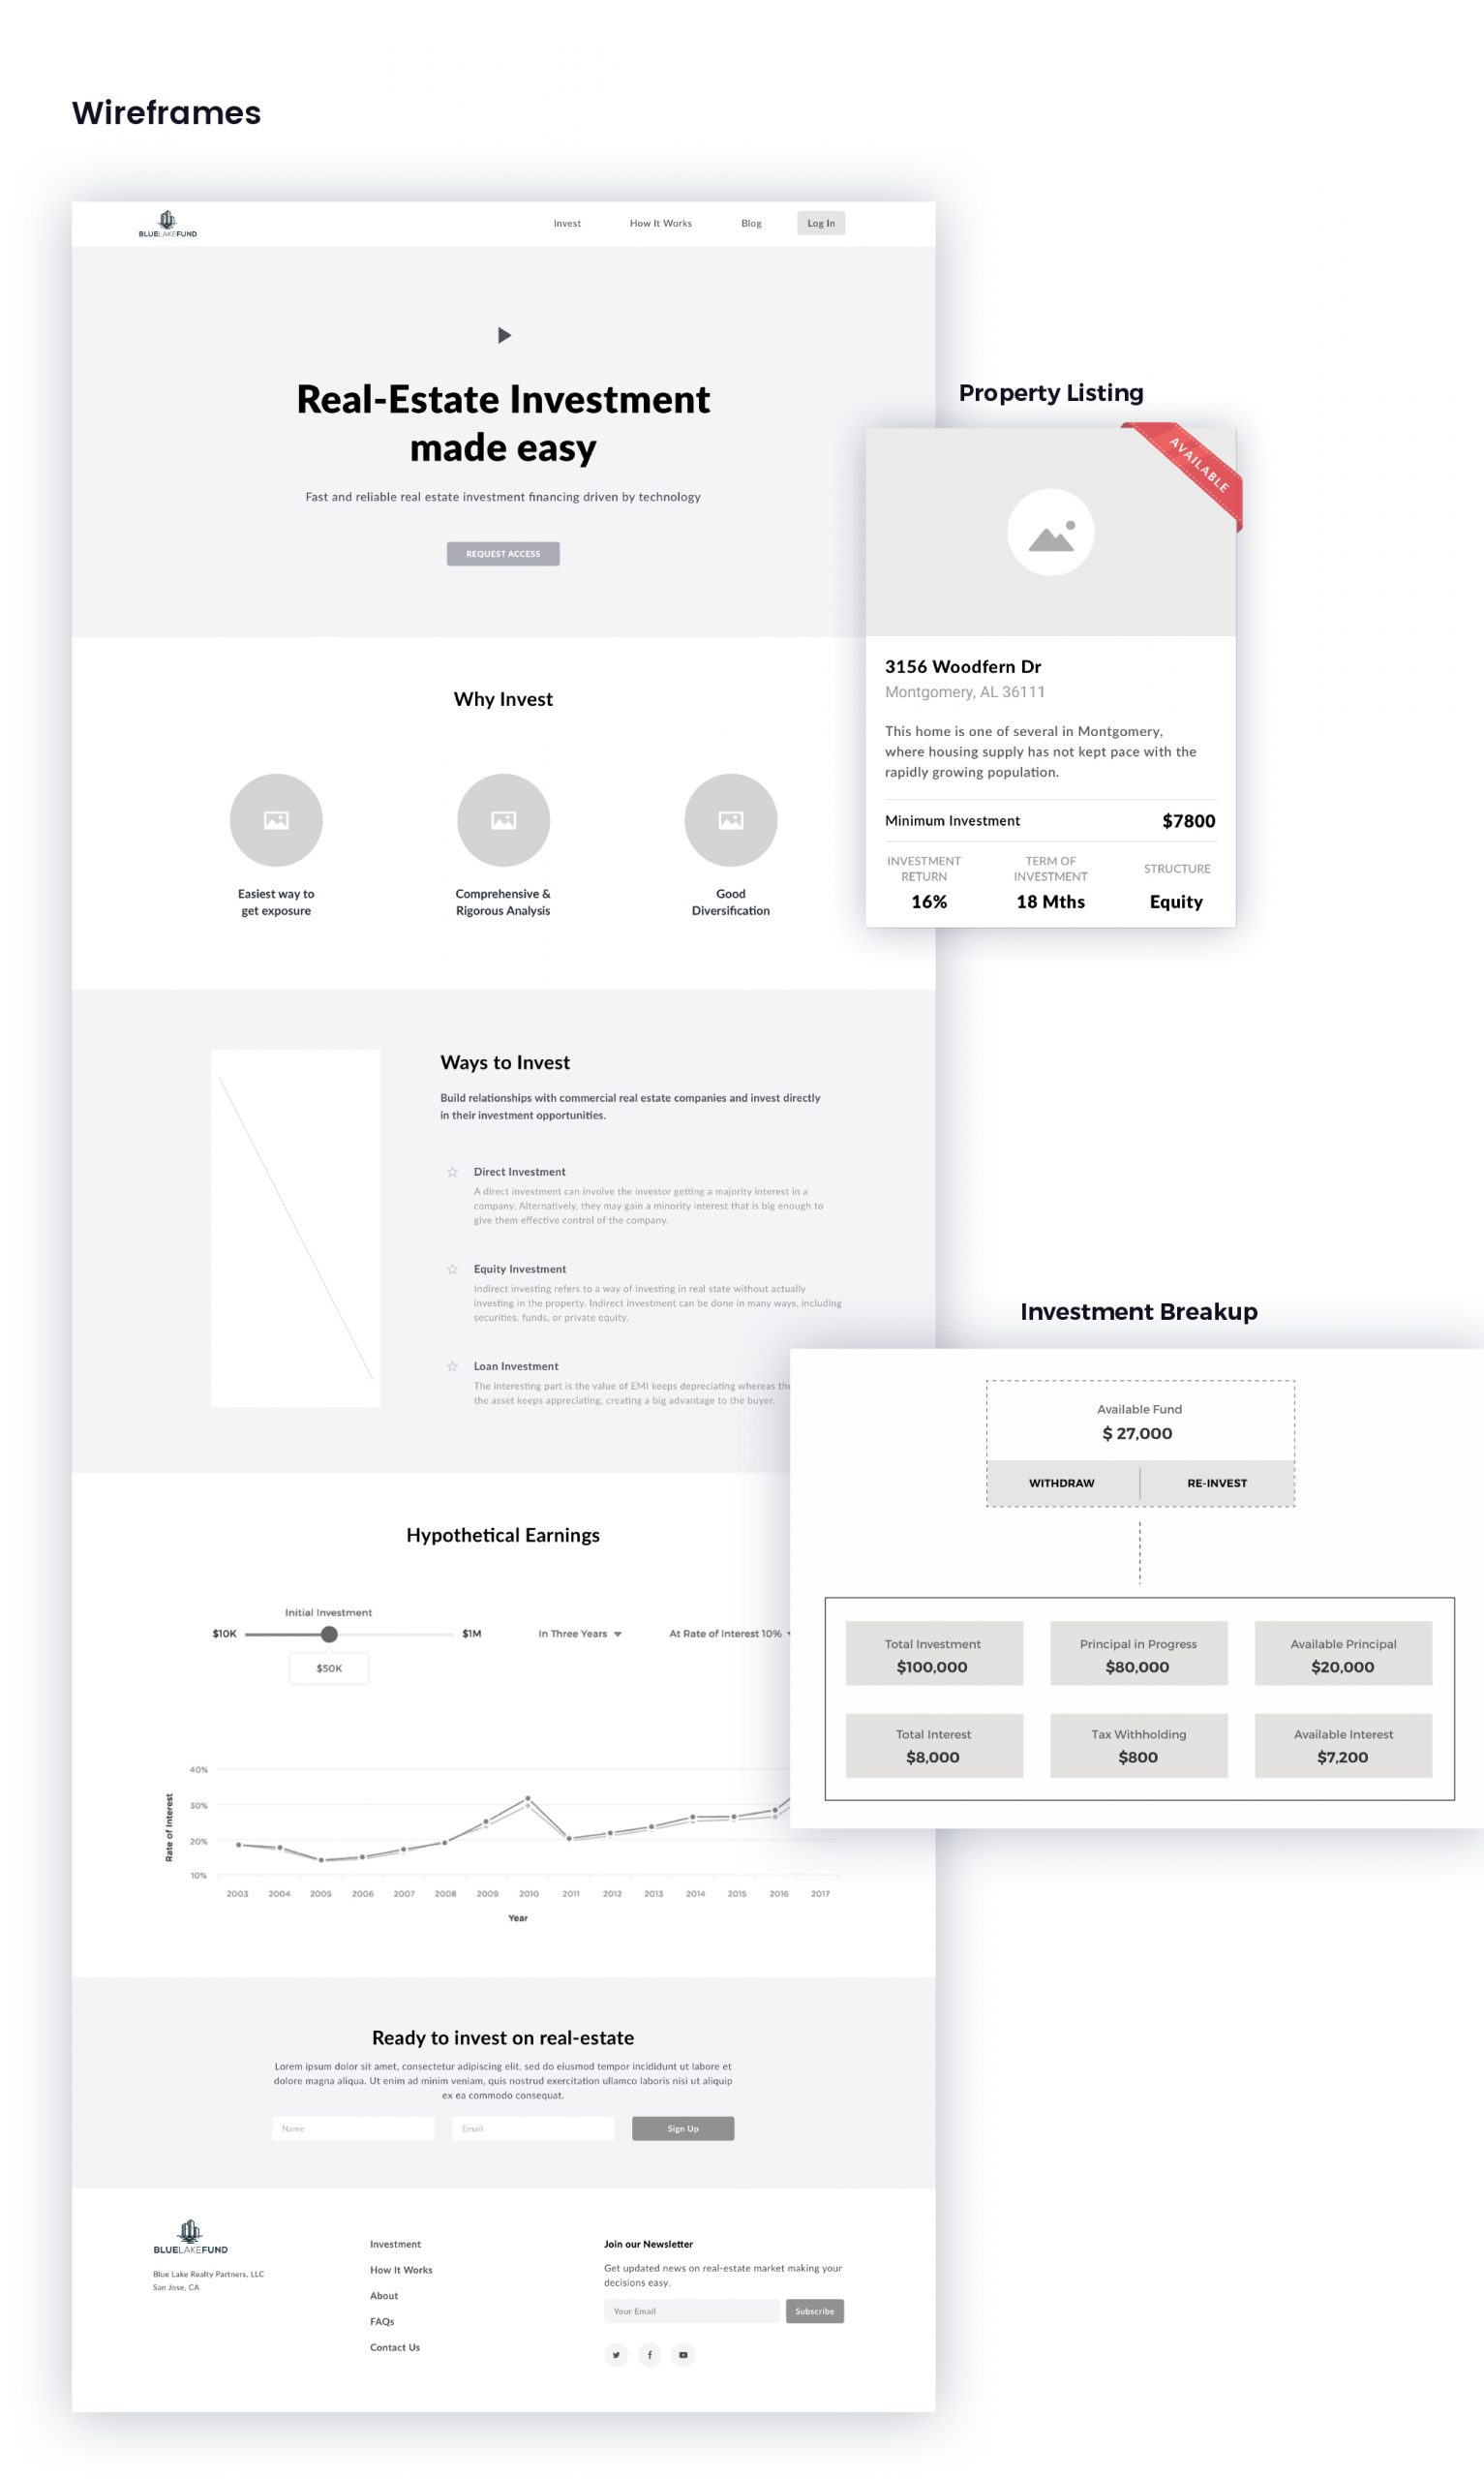 Real Estate Investing Platform - Wireframes